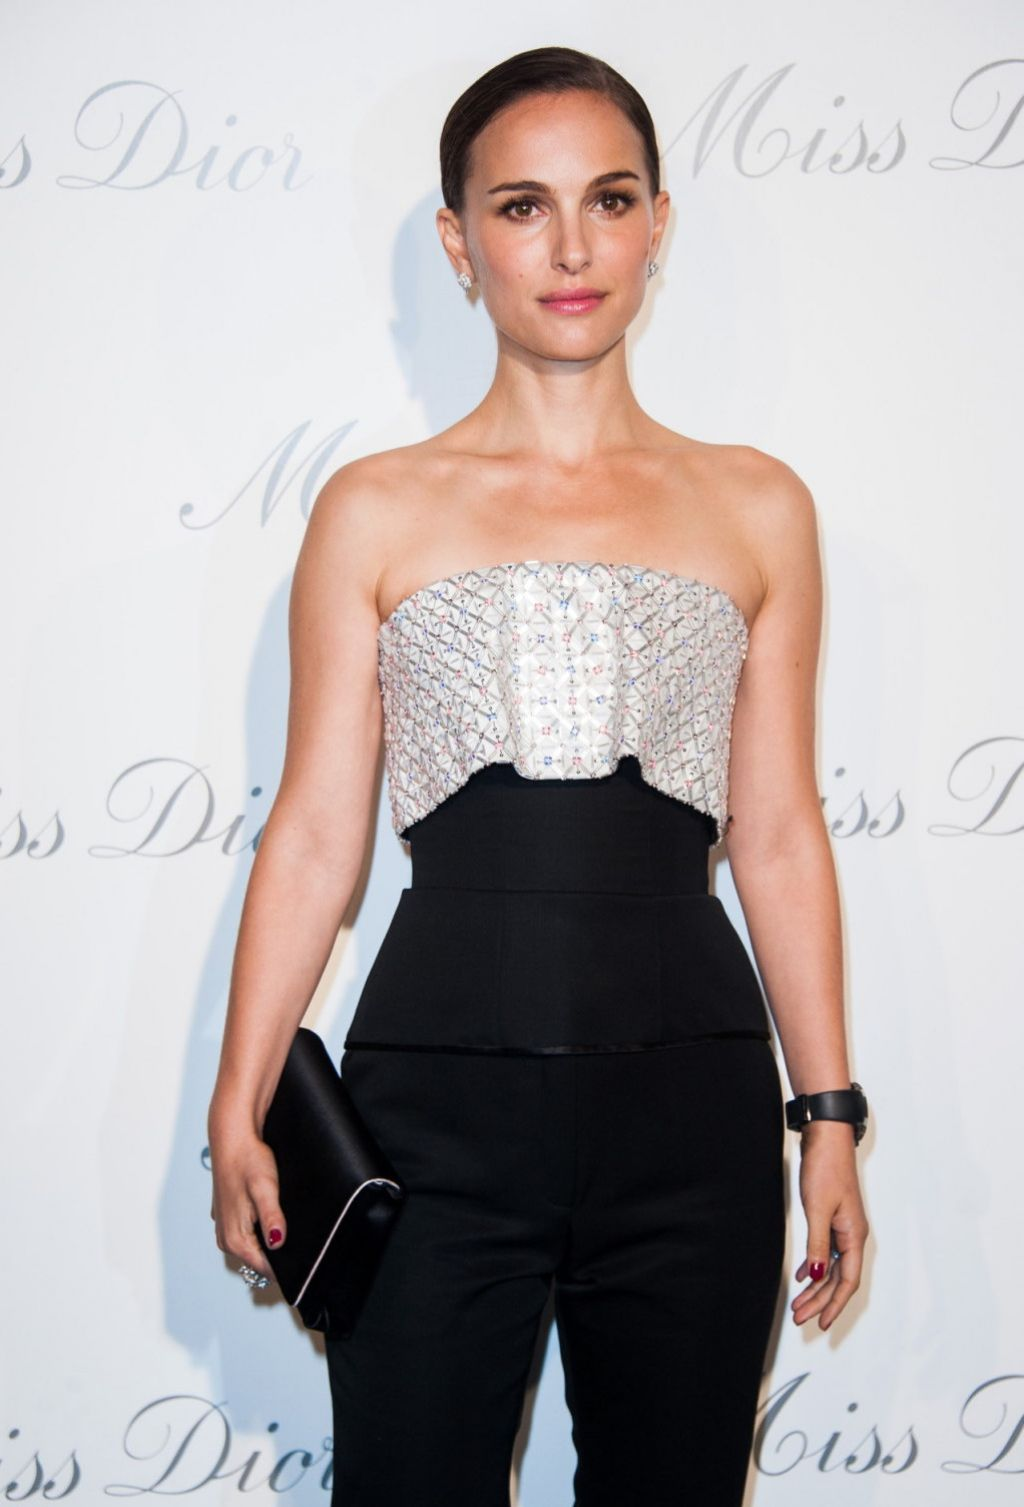 Natalie Portman - Esprit Dior, Miss Dior Exhibition Opening Photocall in Paris